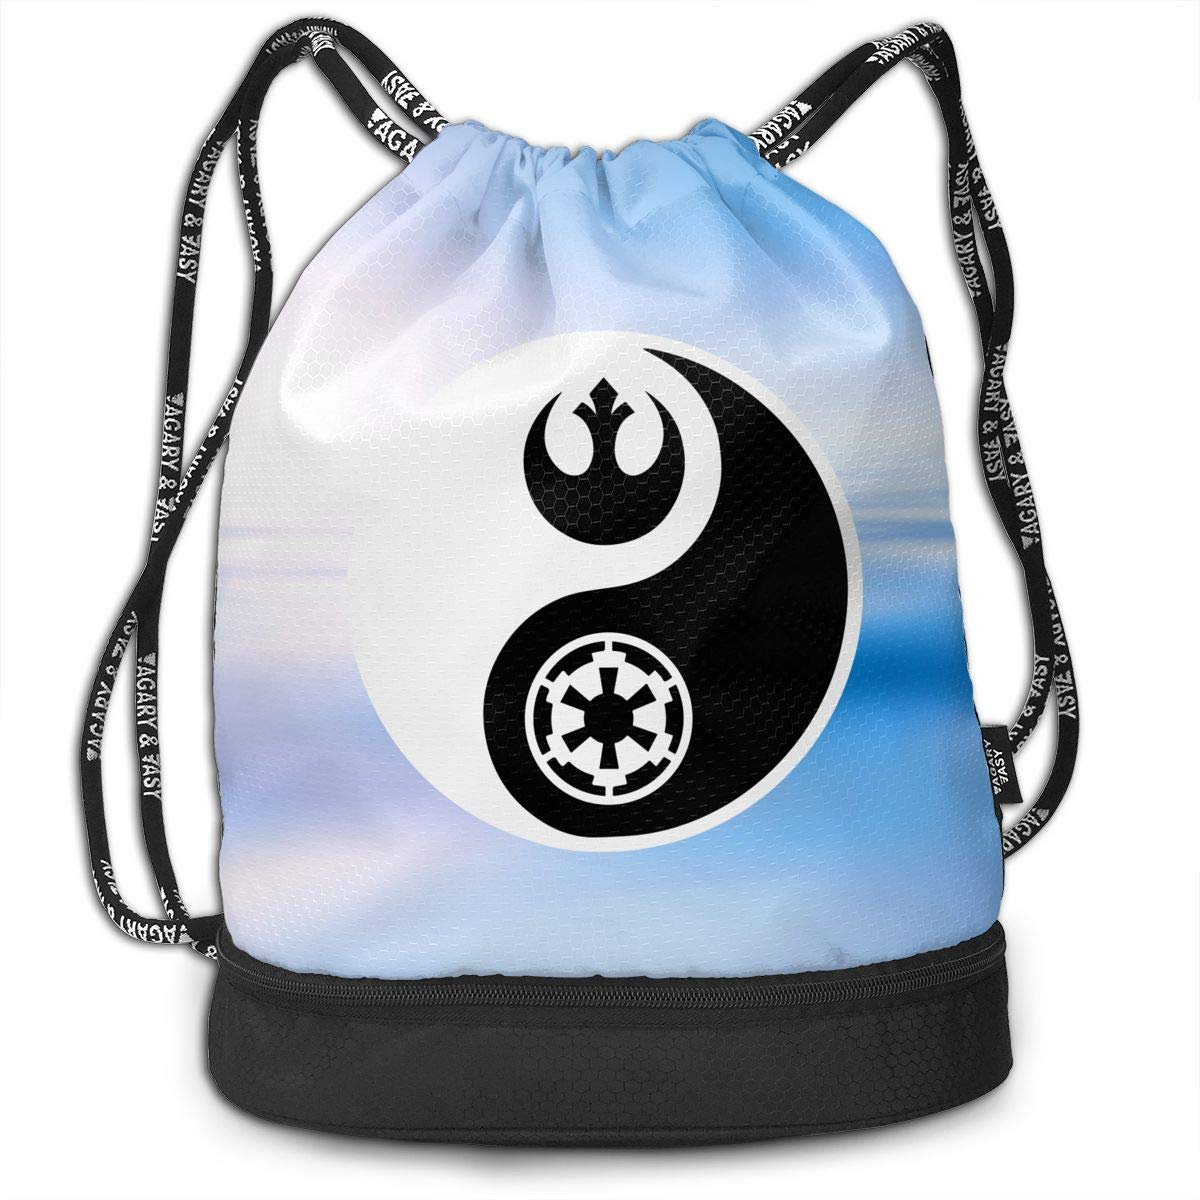 Rebel And Empire Men And Women Drawstring Pack Beam Mouth Yoga Sackpack Shoulder Bags